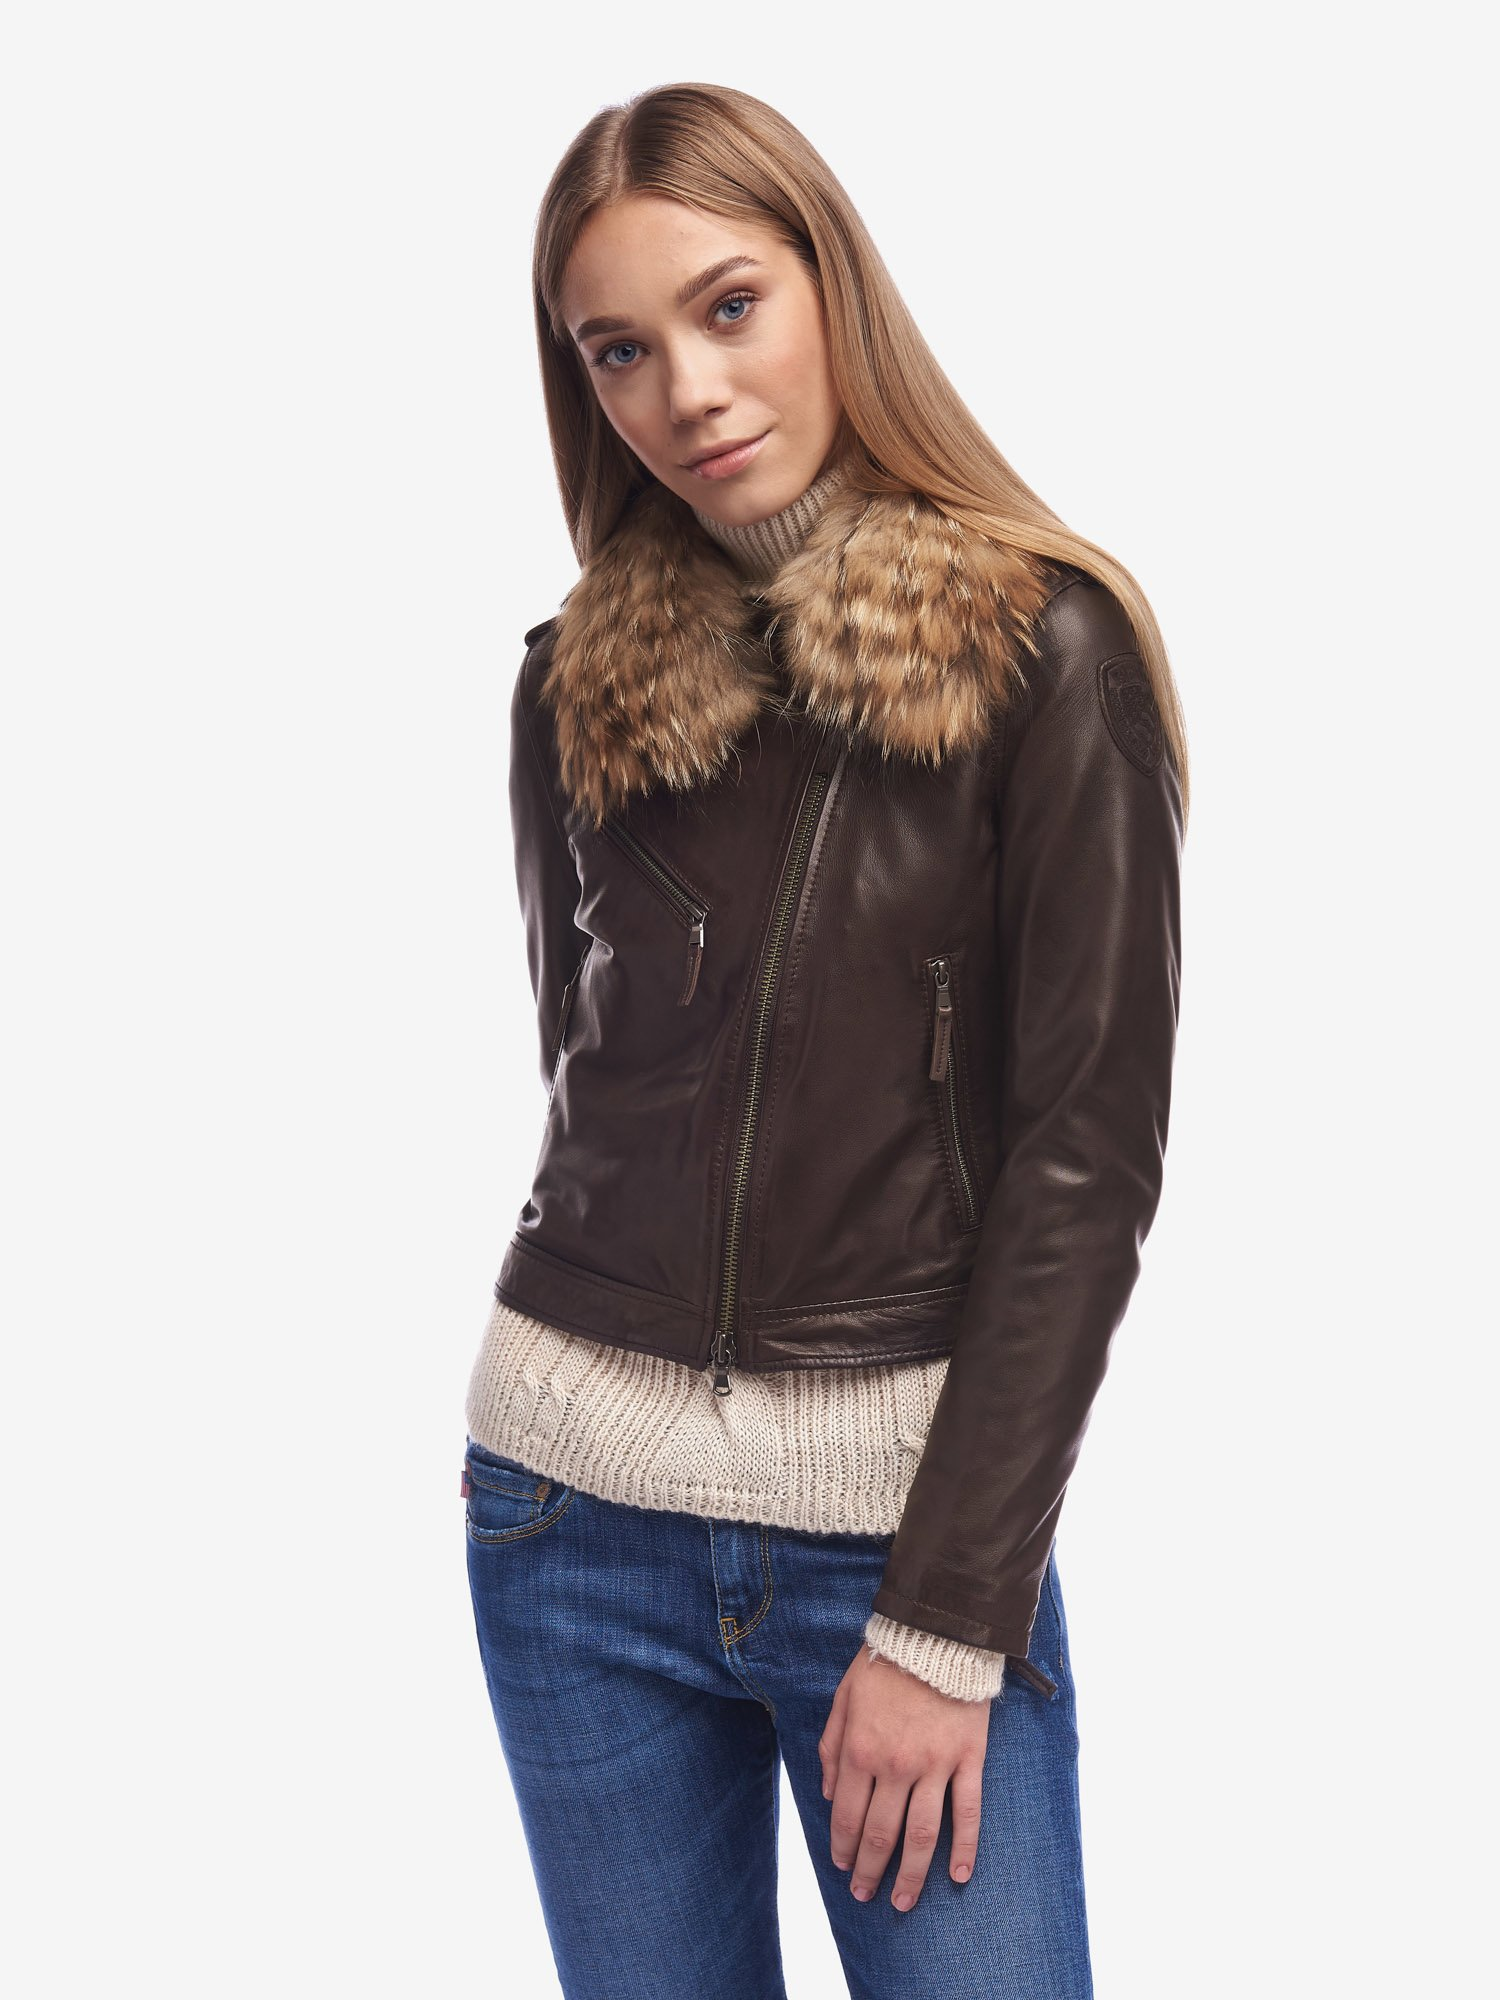 WARD BIKER JACKET WITH FUR COLLAR - Blauer